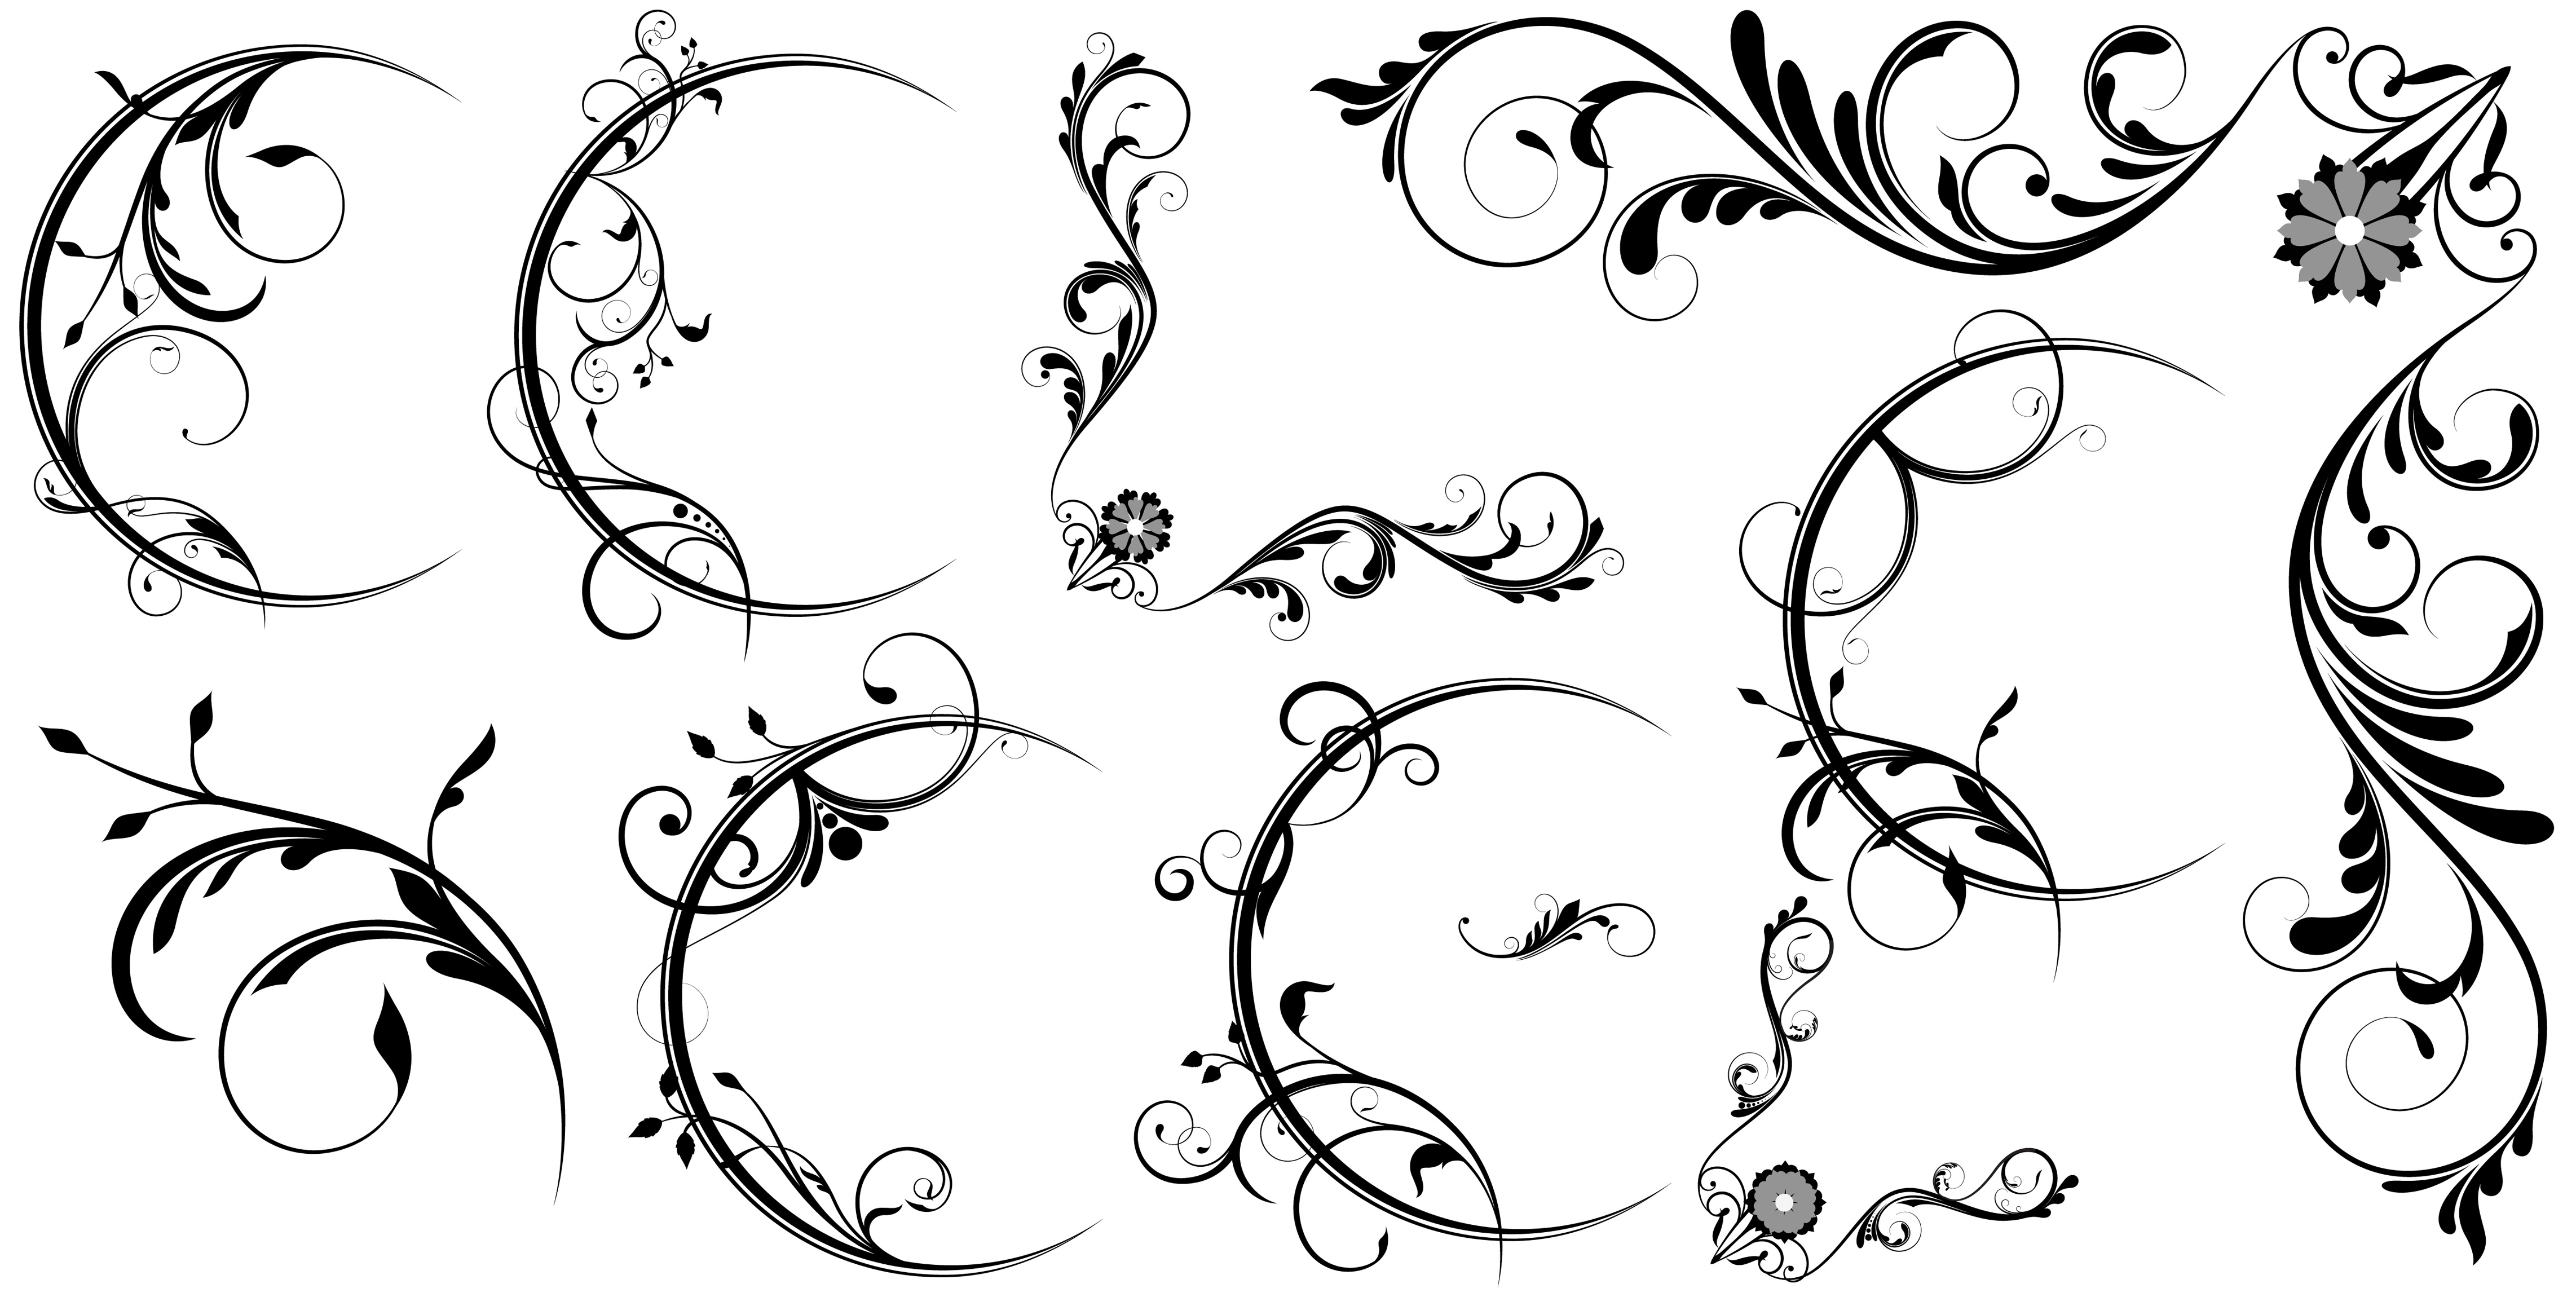 19 Free Vector Graphics For Photoshop Images